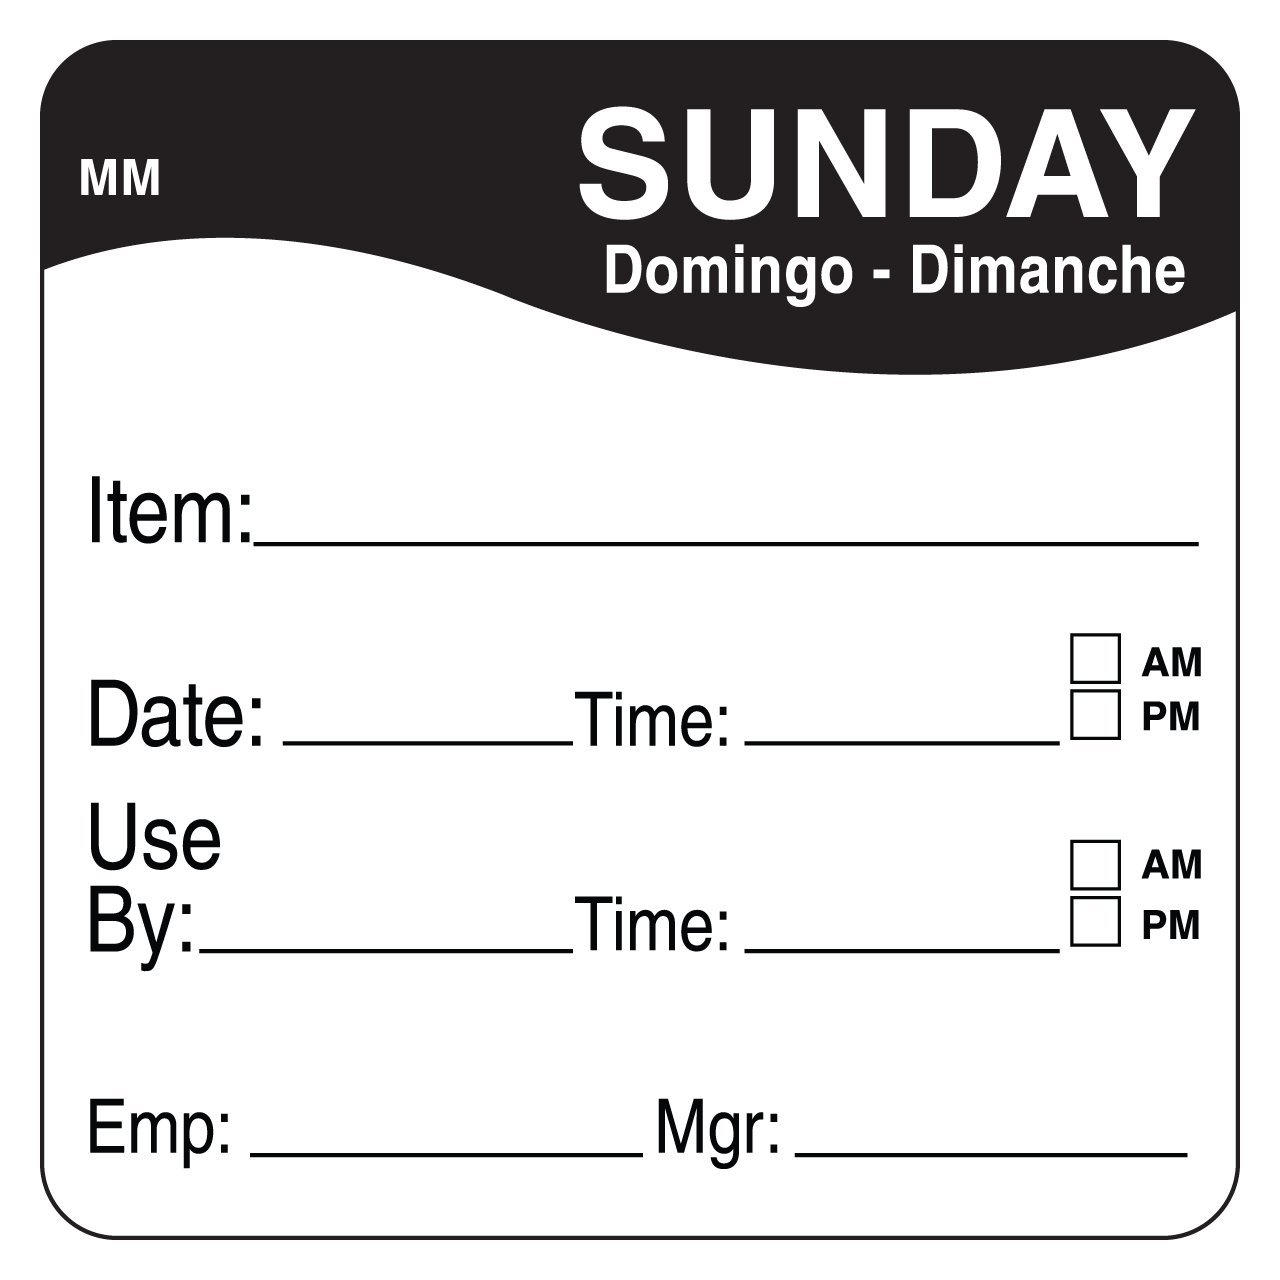 DayMark MoveMark Day of the Week Removable Label, Sunday, Item/Date/Use By, 2'' x 2'', Black (Roll of 500)